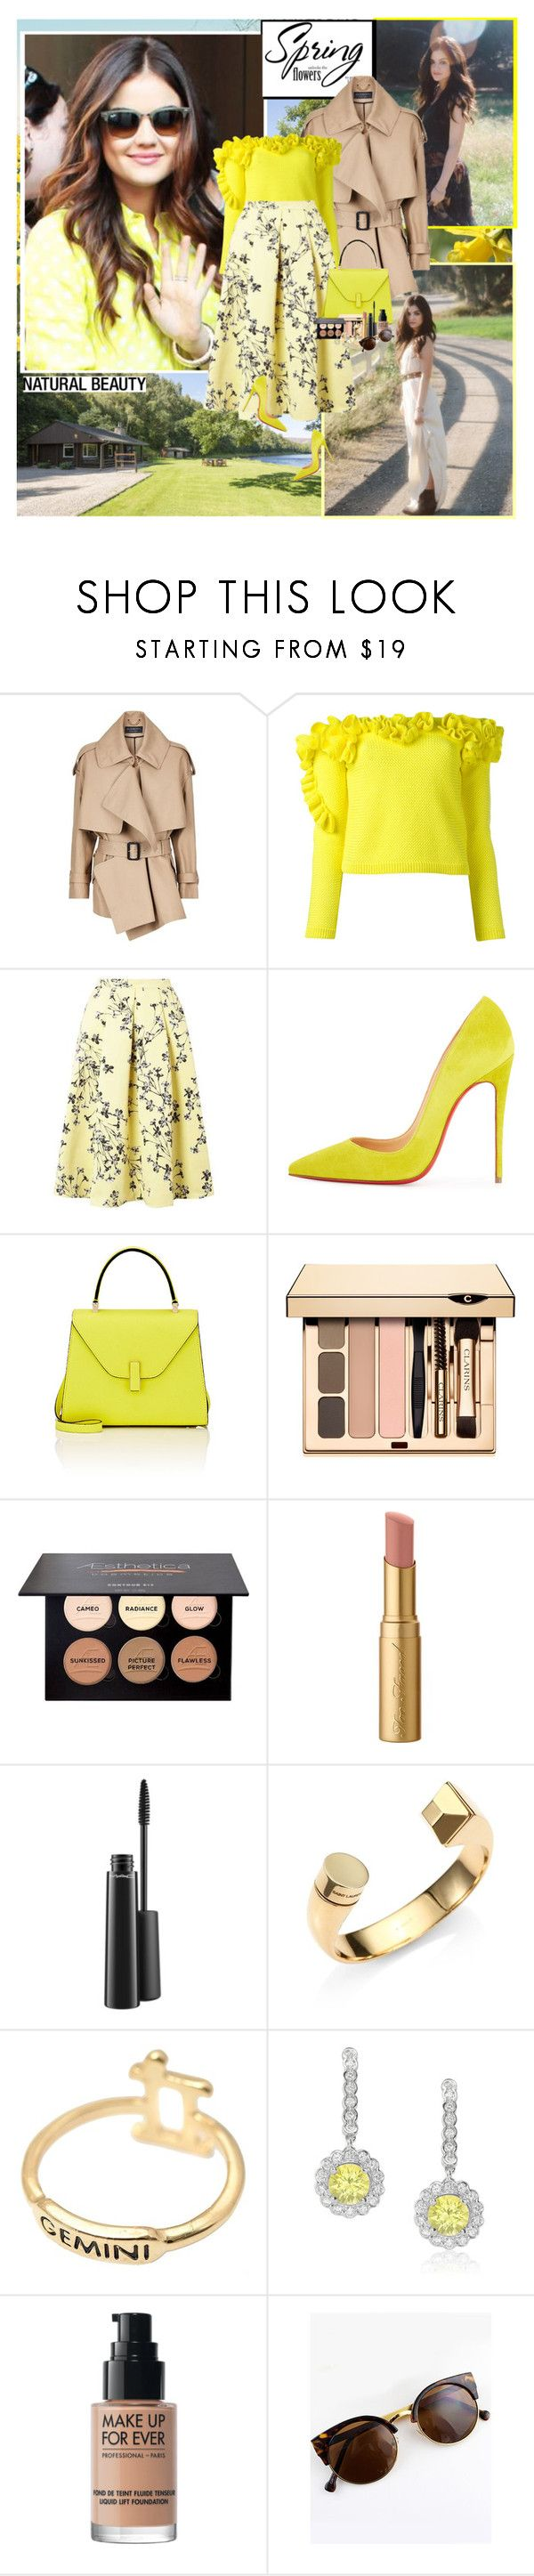 """""""Lucy Hale : )"""" by thisiswhoireallyam7 ❤ liked on Polyvore featuring Burberry, Delpozo, Miss Selfridge, Christian Louboutin, Valextra, Too Faced Cosmetics, MAC Cosmetics, Yves Saint Laurent, MAKE UP FOR EVER and yellow"""